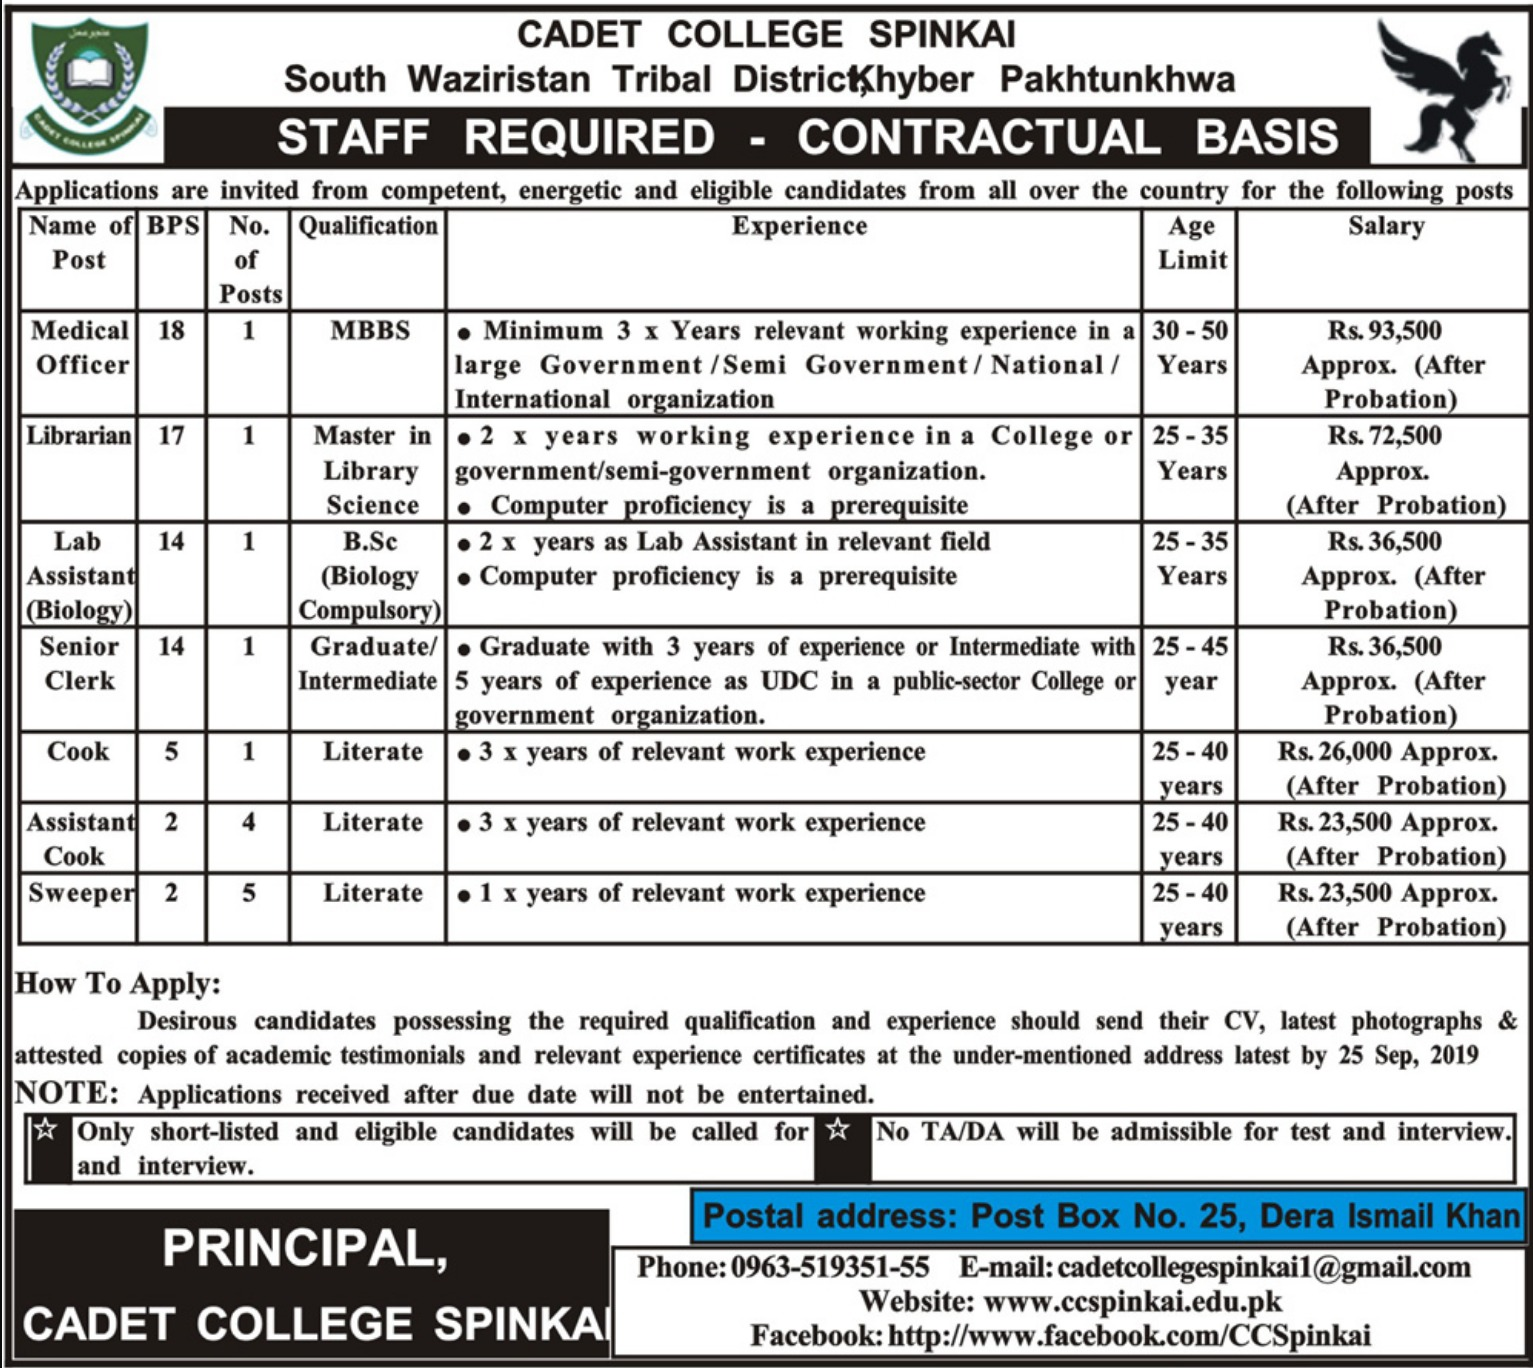 Cadet College Spinkai Jobs 2019 KPKCadet College Spinkai Jobs 2019 KPK